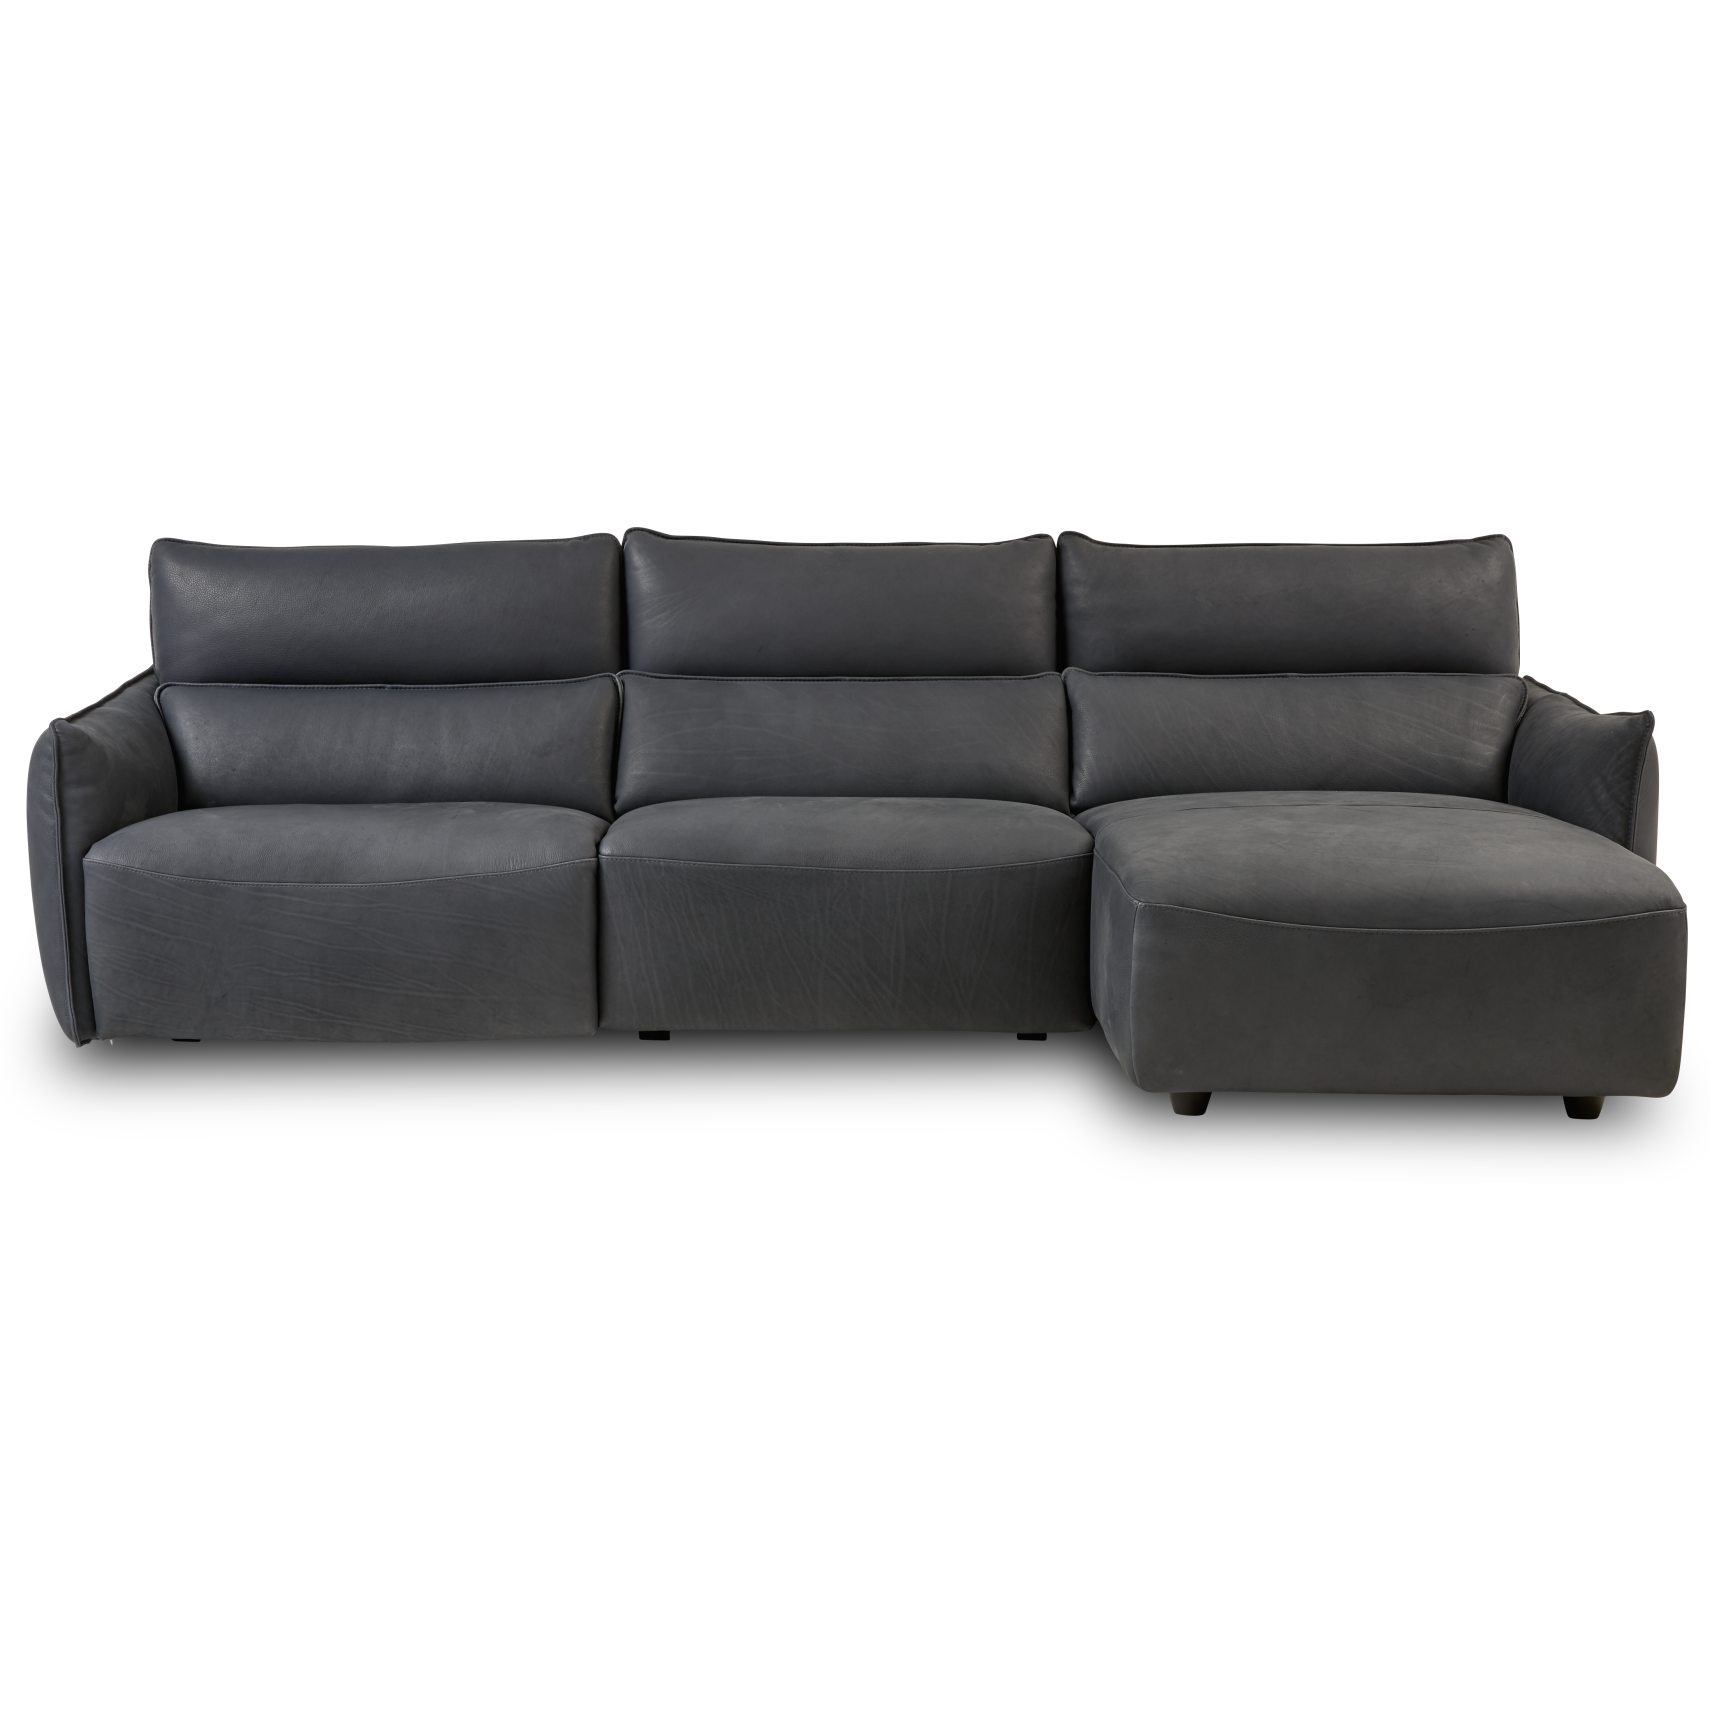 Natuzzi C027 Sofa med chaiselong - Sofa med chaiselong